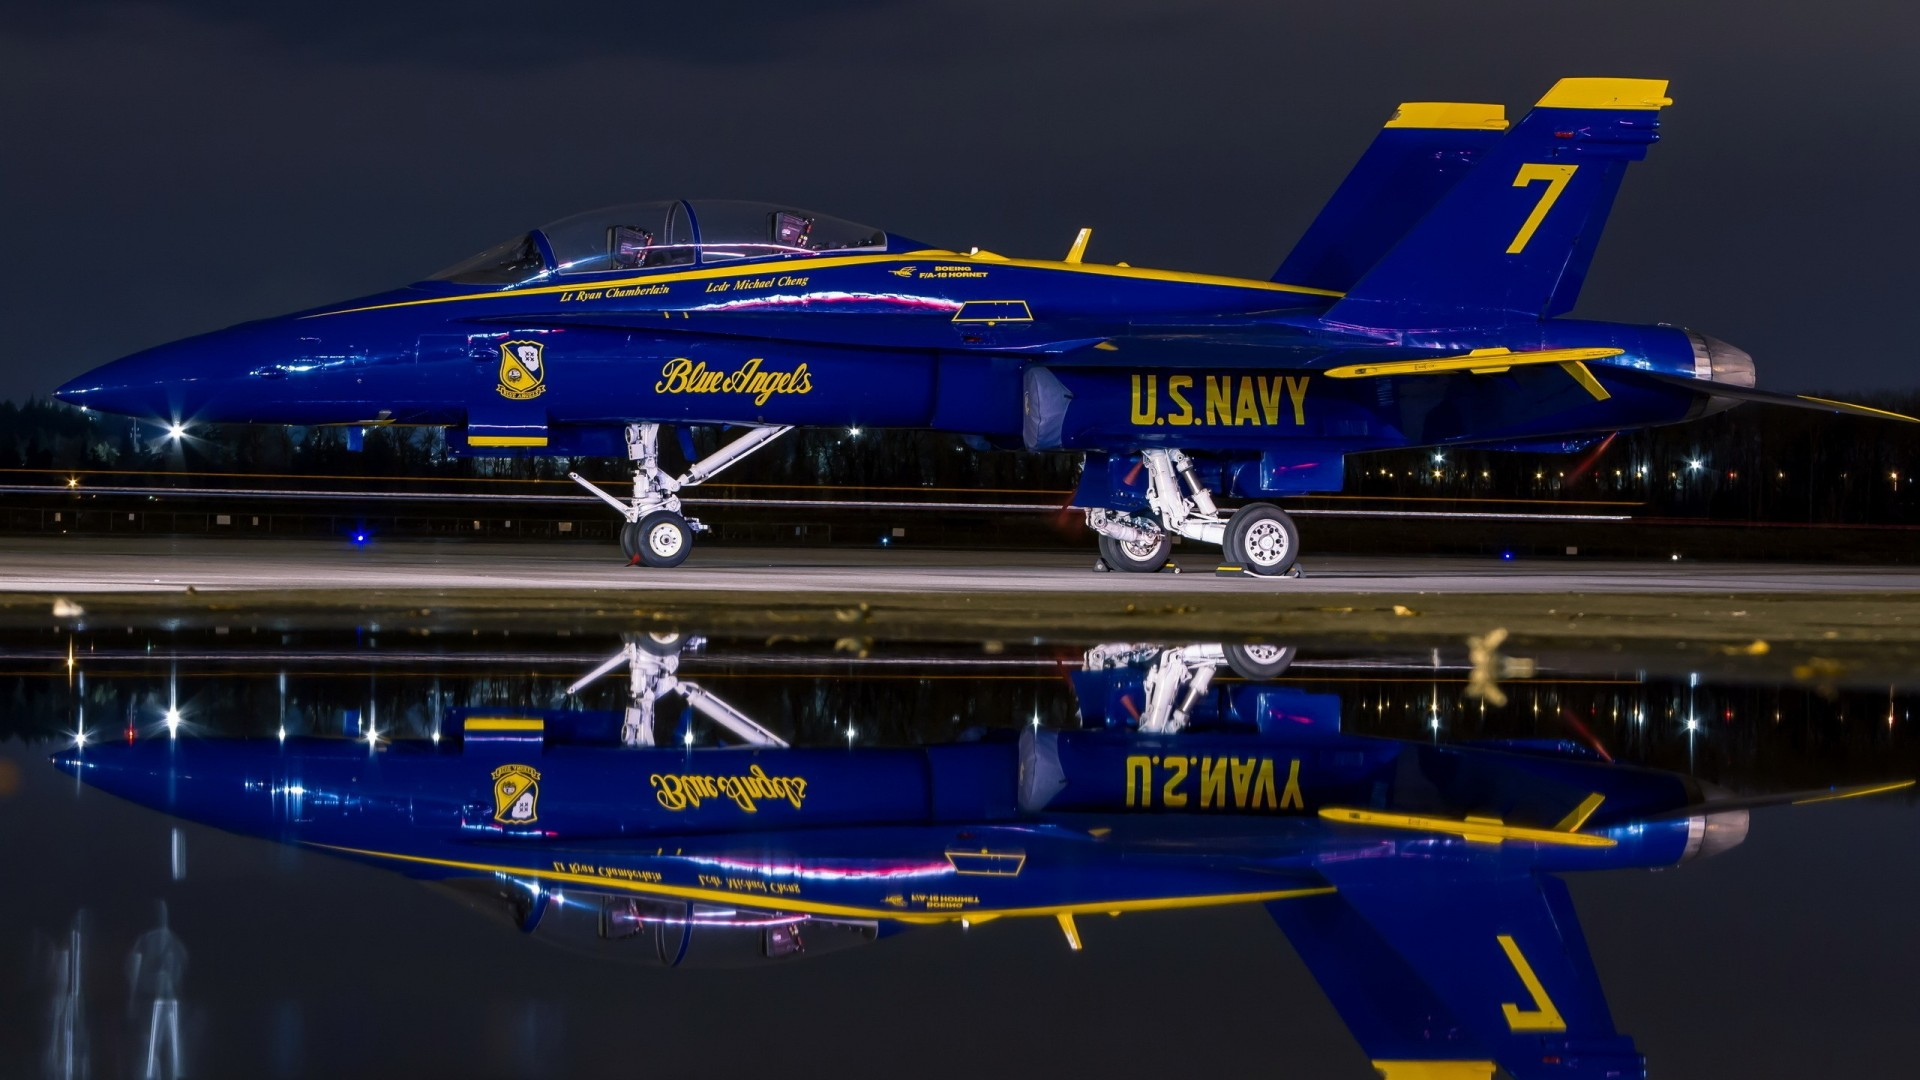 blue-angel-f-hornet-reflected-at-night-hd-1920×1080-wallpaper-wpc9003066